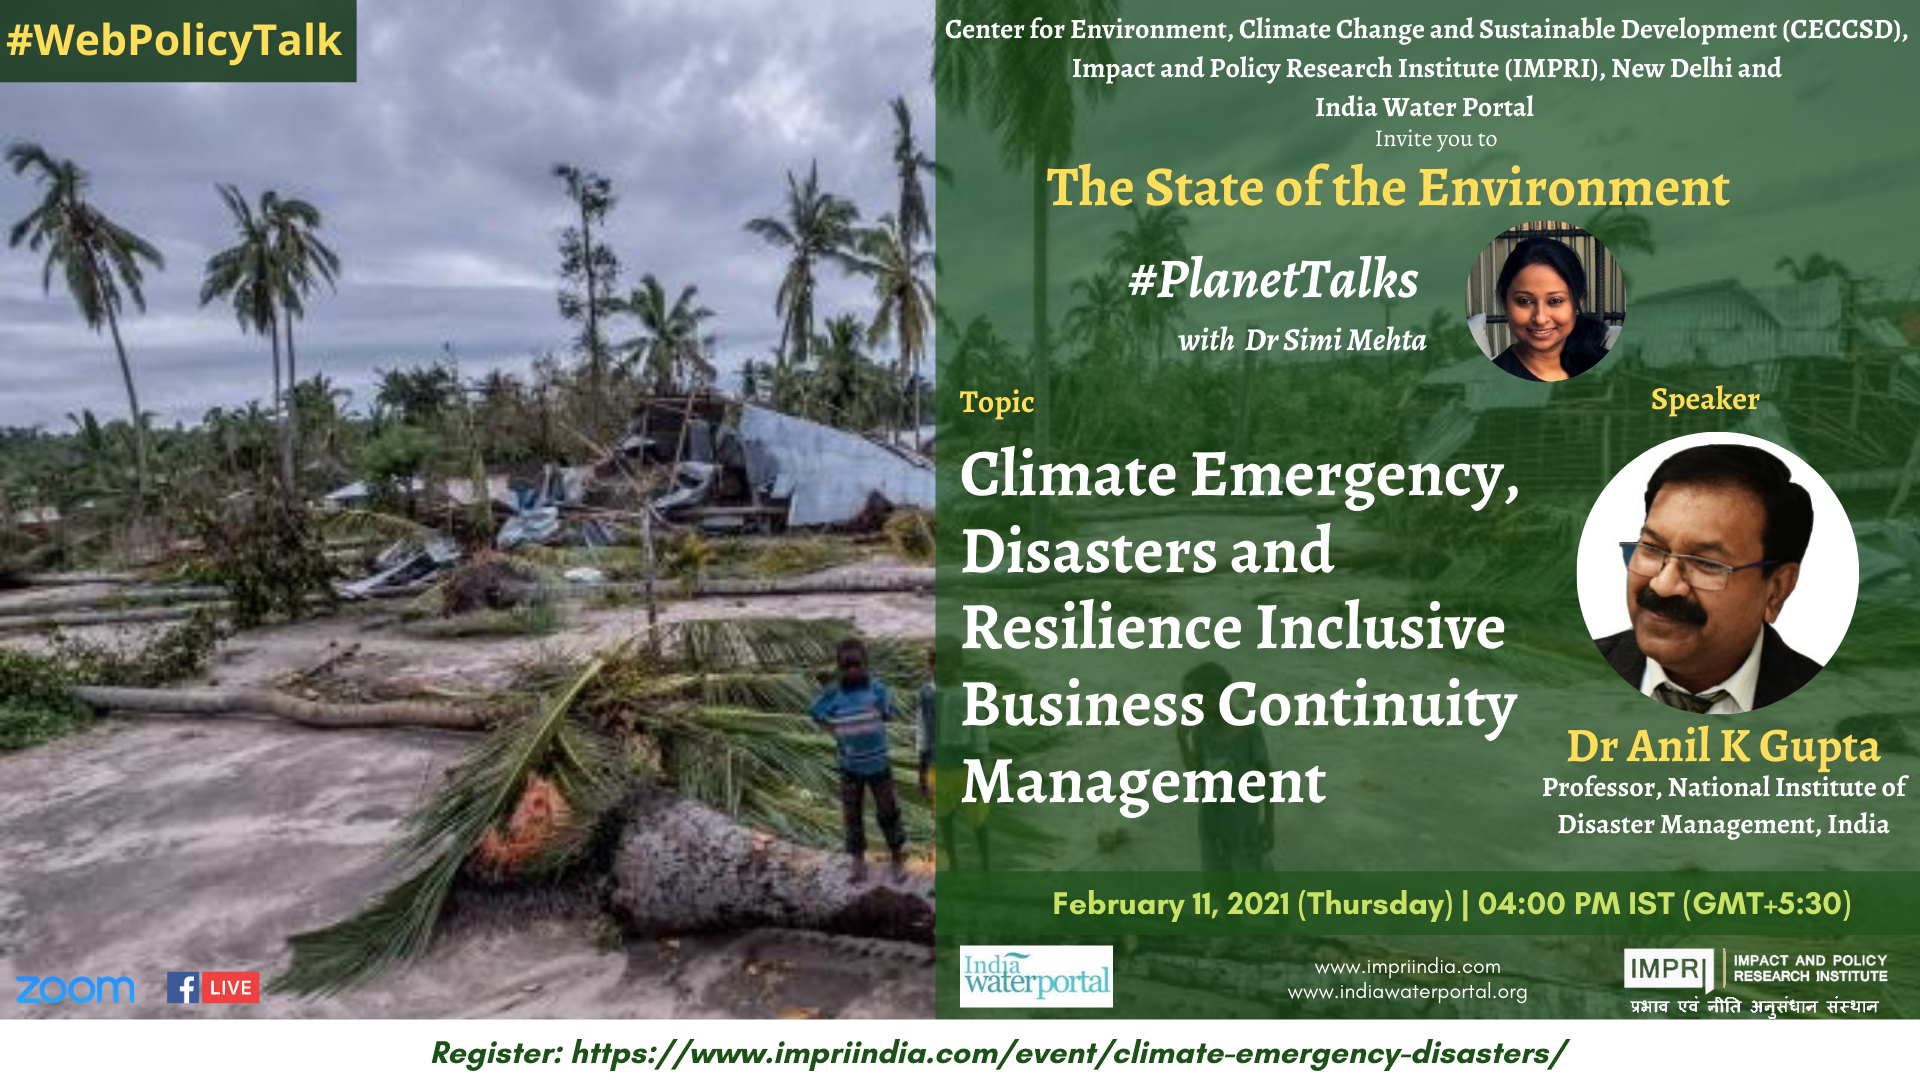 Climate Emergency, Disasters and Resilience: Inclusive Business Continuity Management